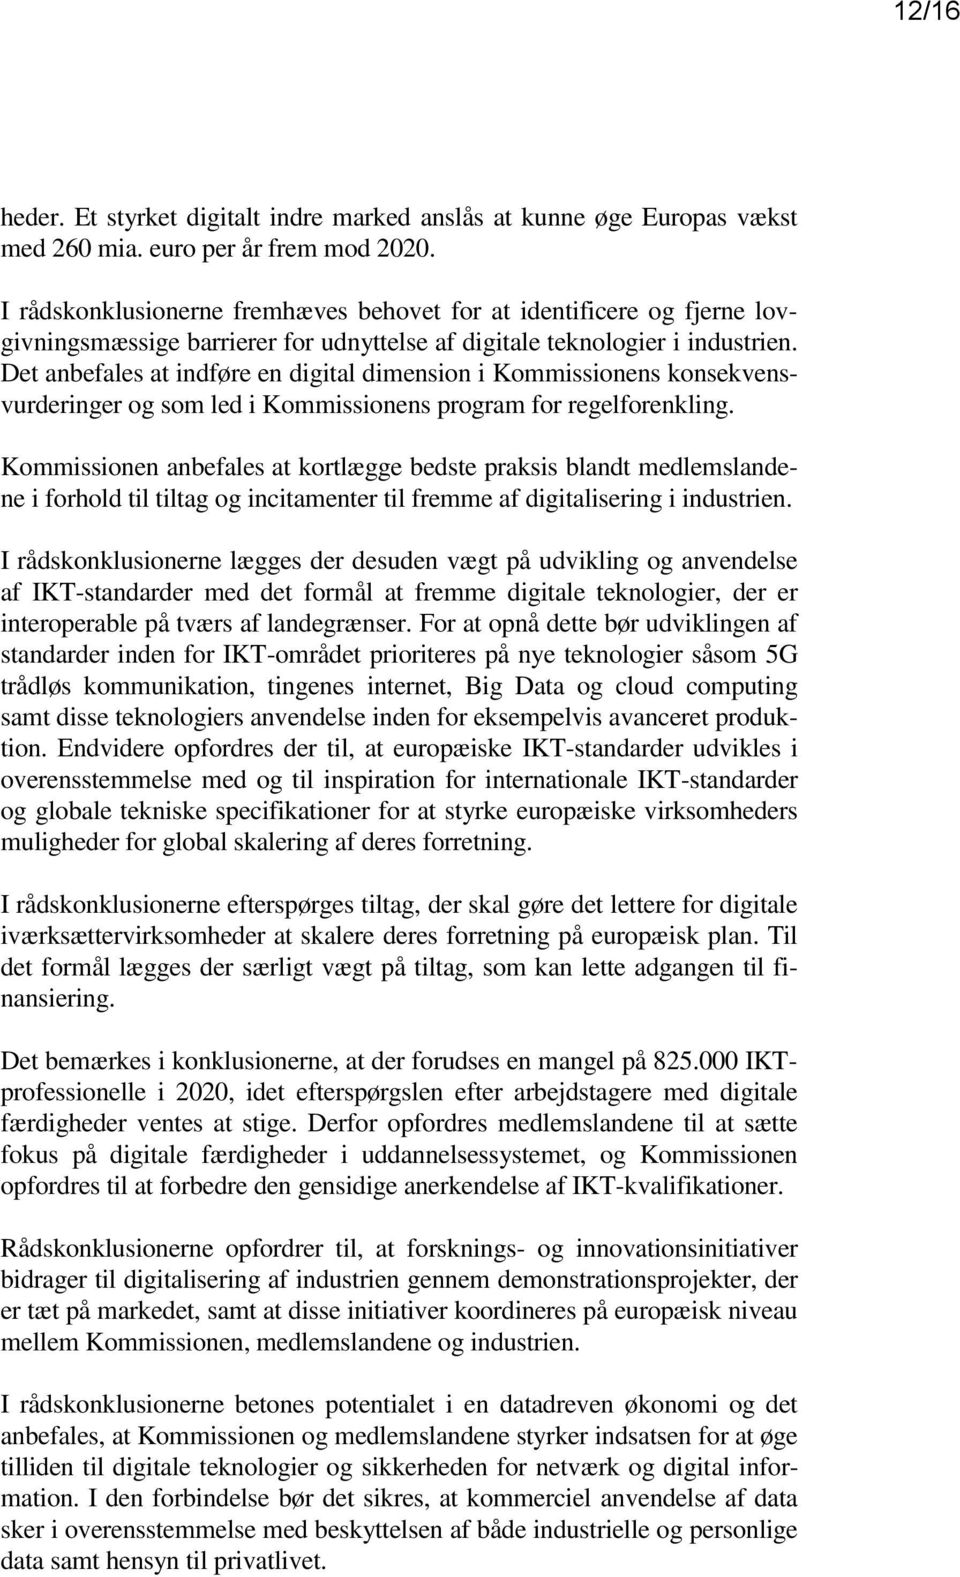 Det anbefales at indføre en digital dimension i Kommissionens konsekvensvurderinger og som led i Kommissionens program for regelforenkling.